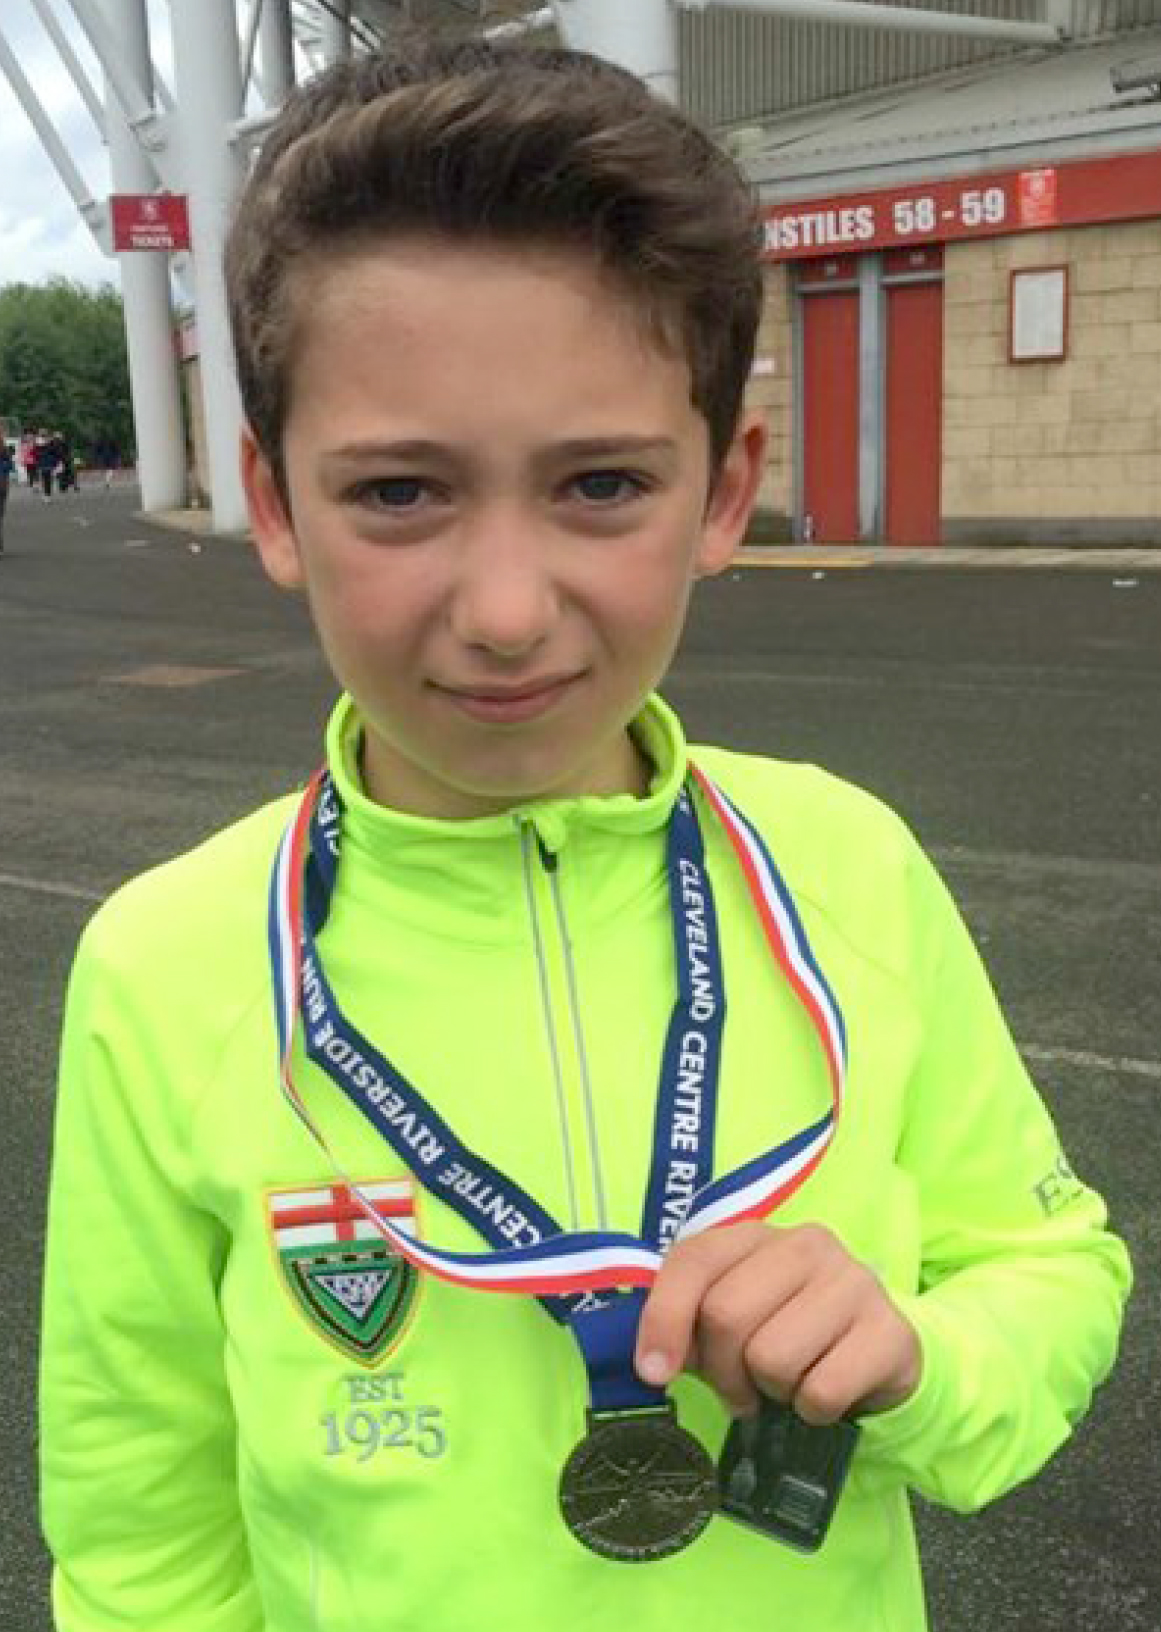 Twelve Year Old Runs For Charity